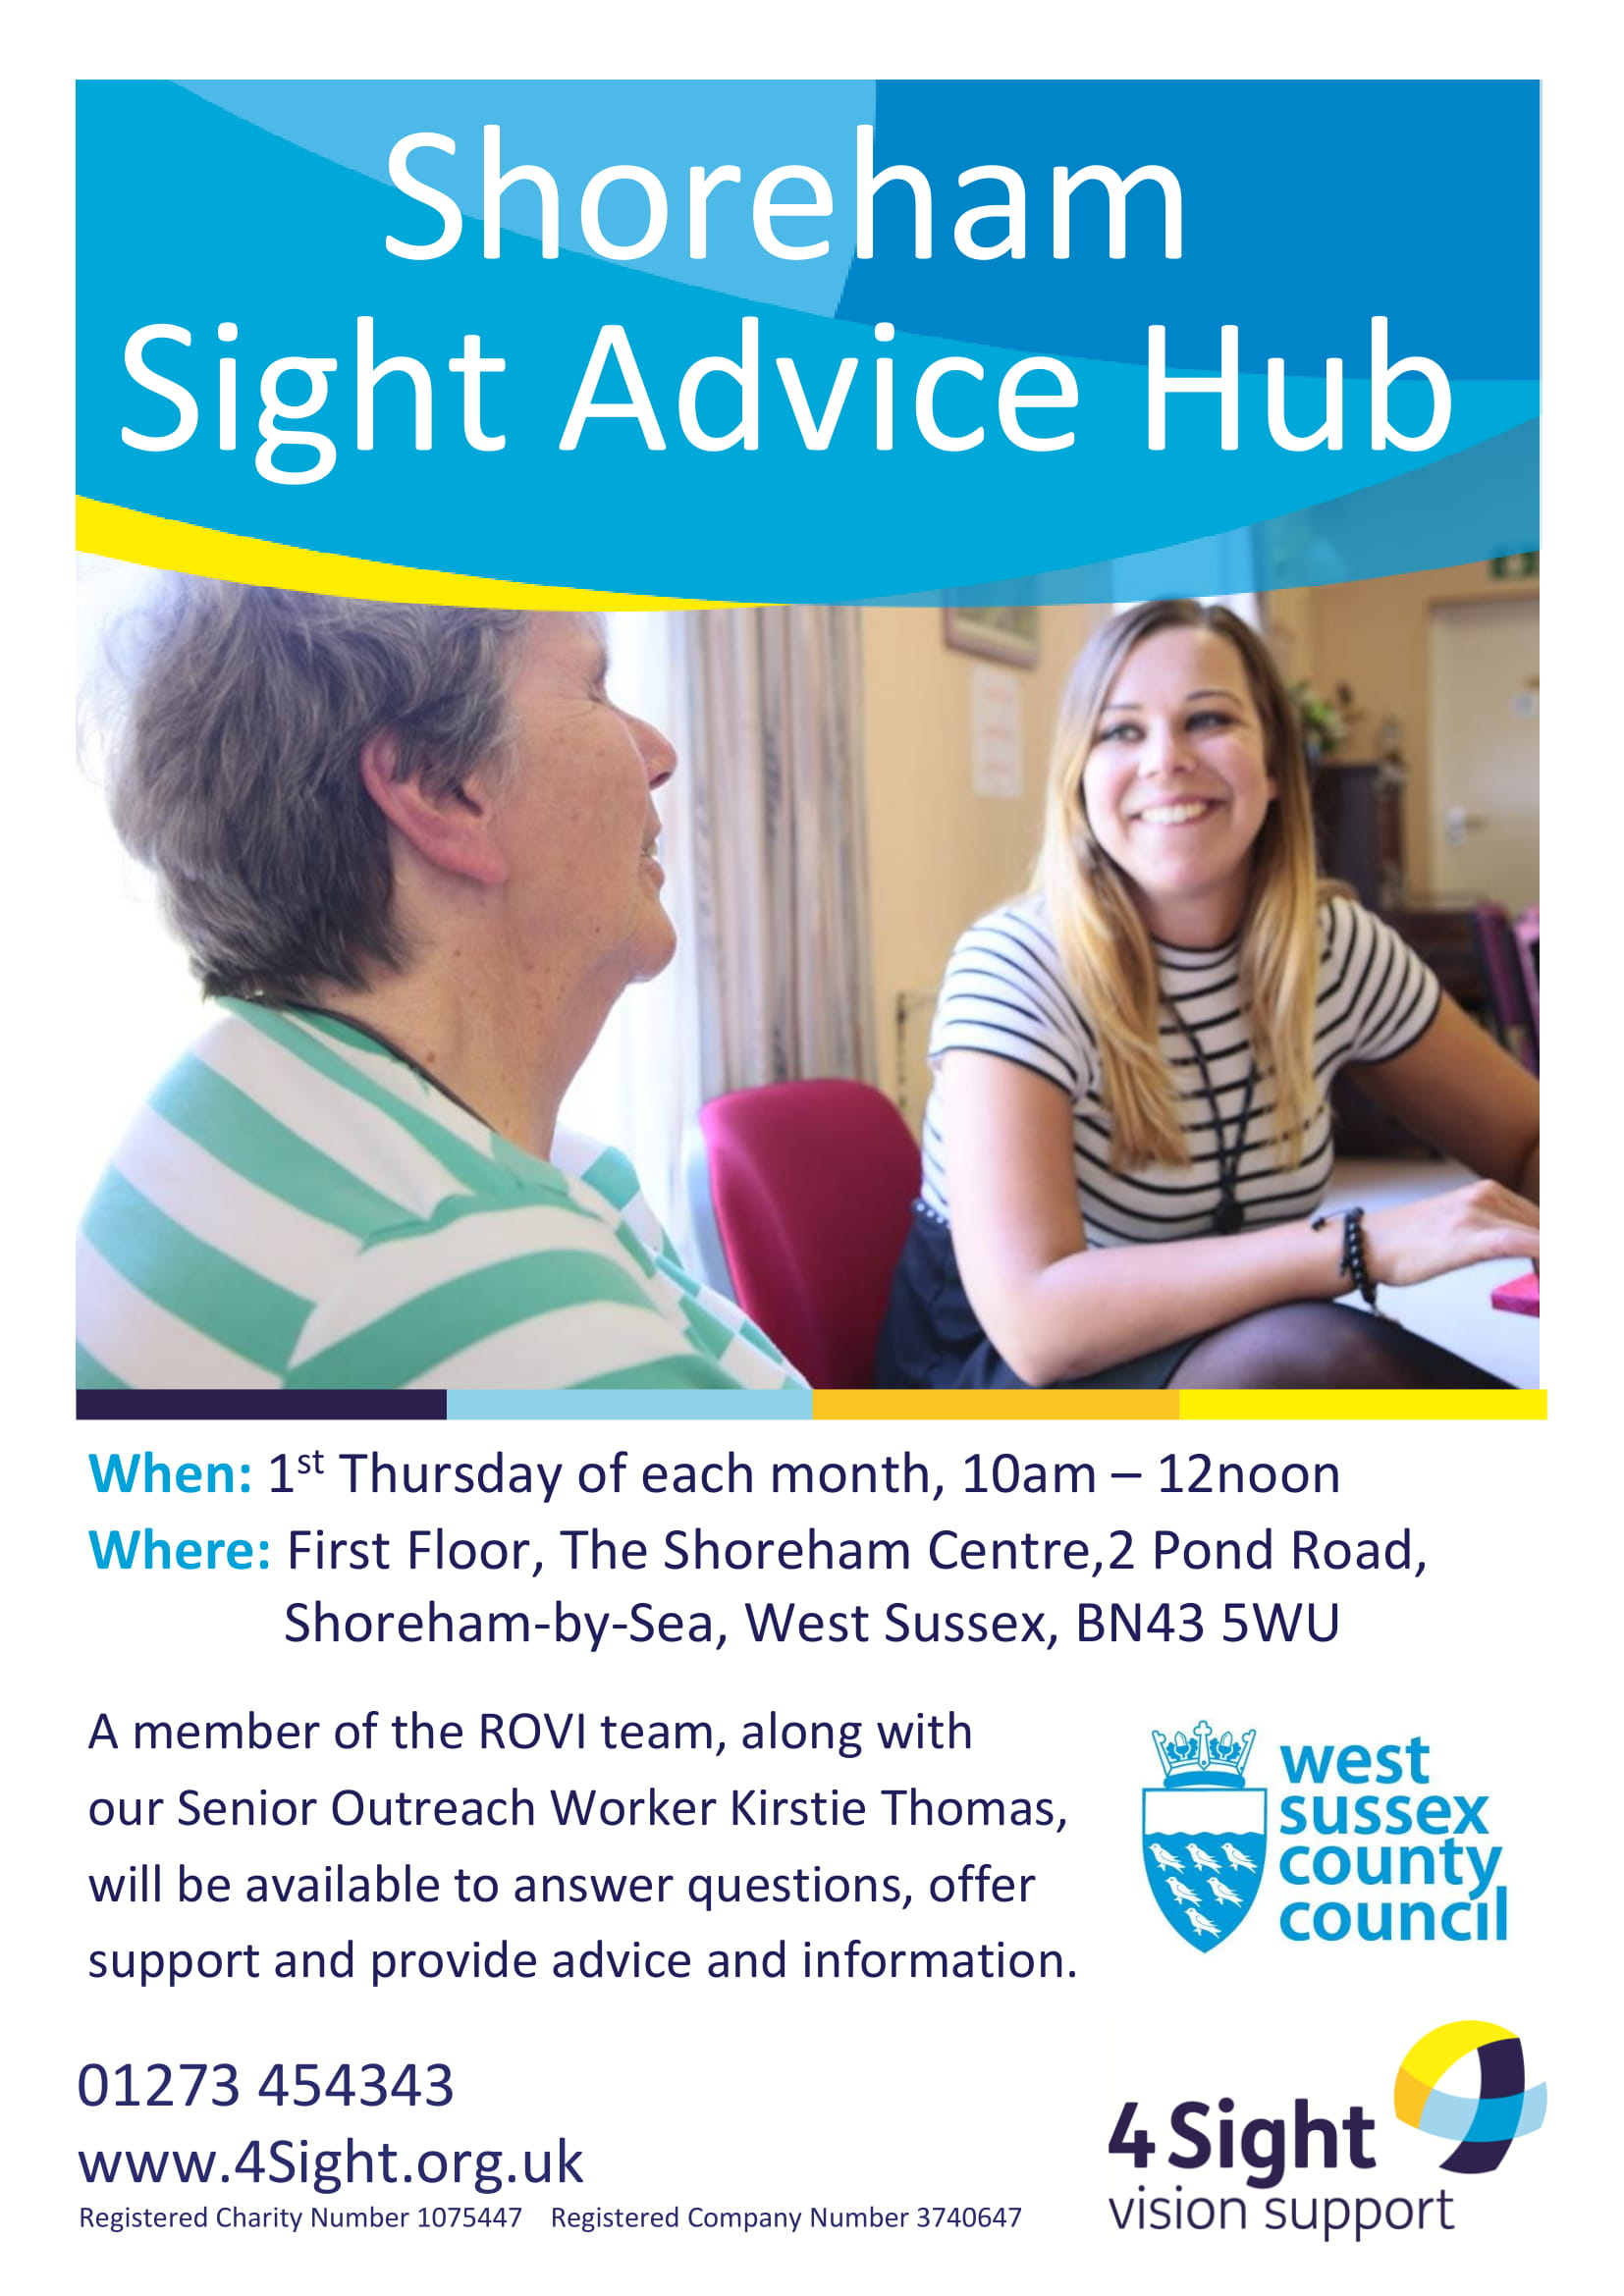 Shoreham SIght Advice Hub-1